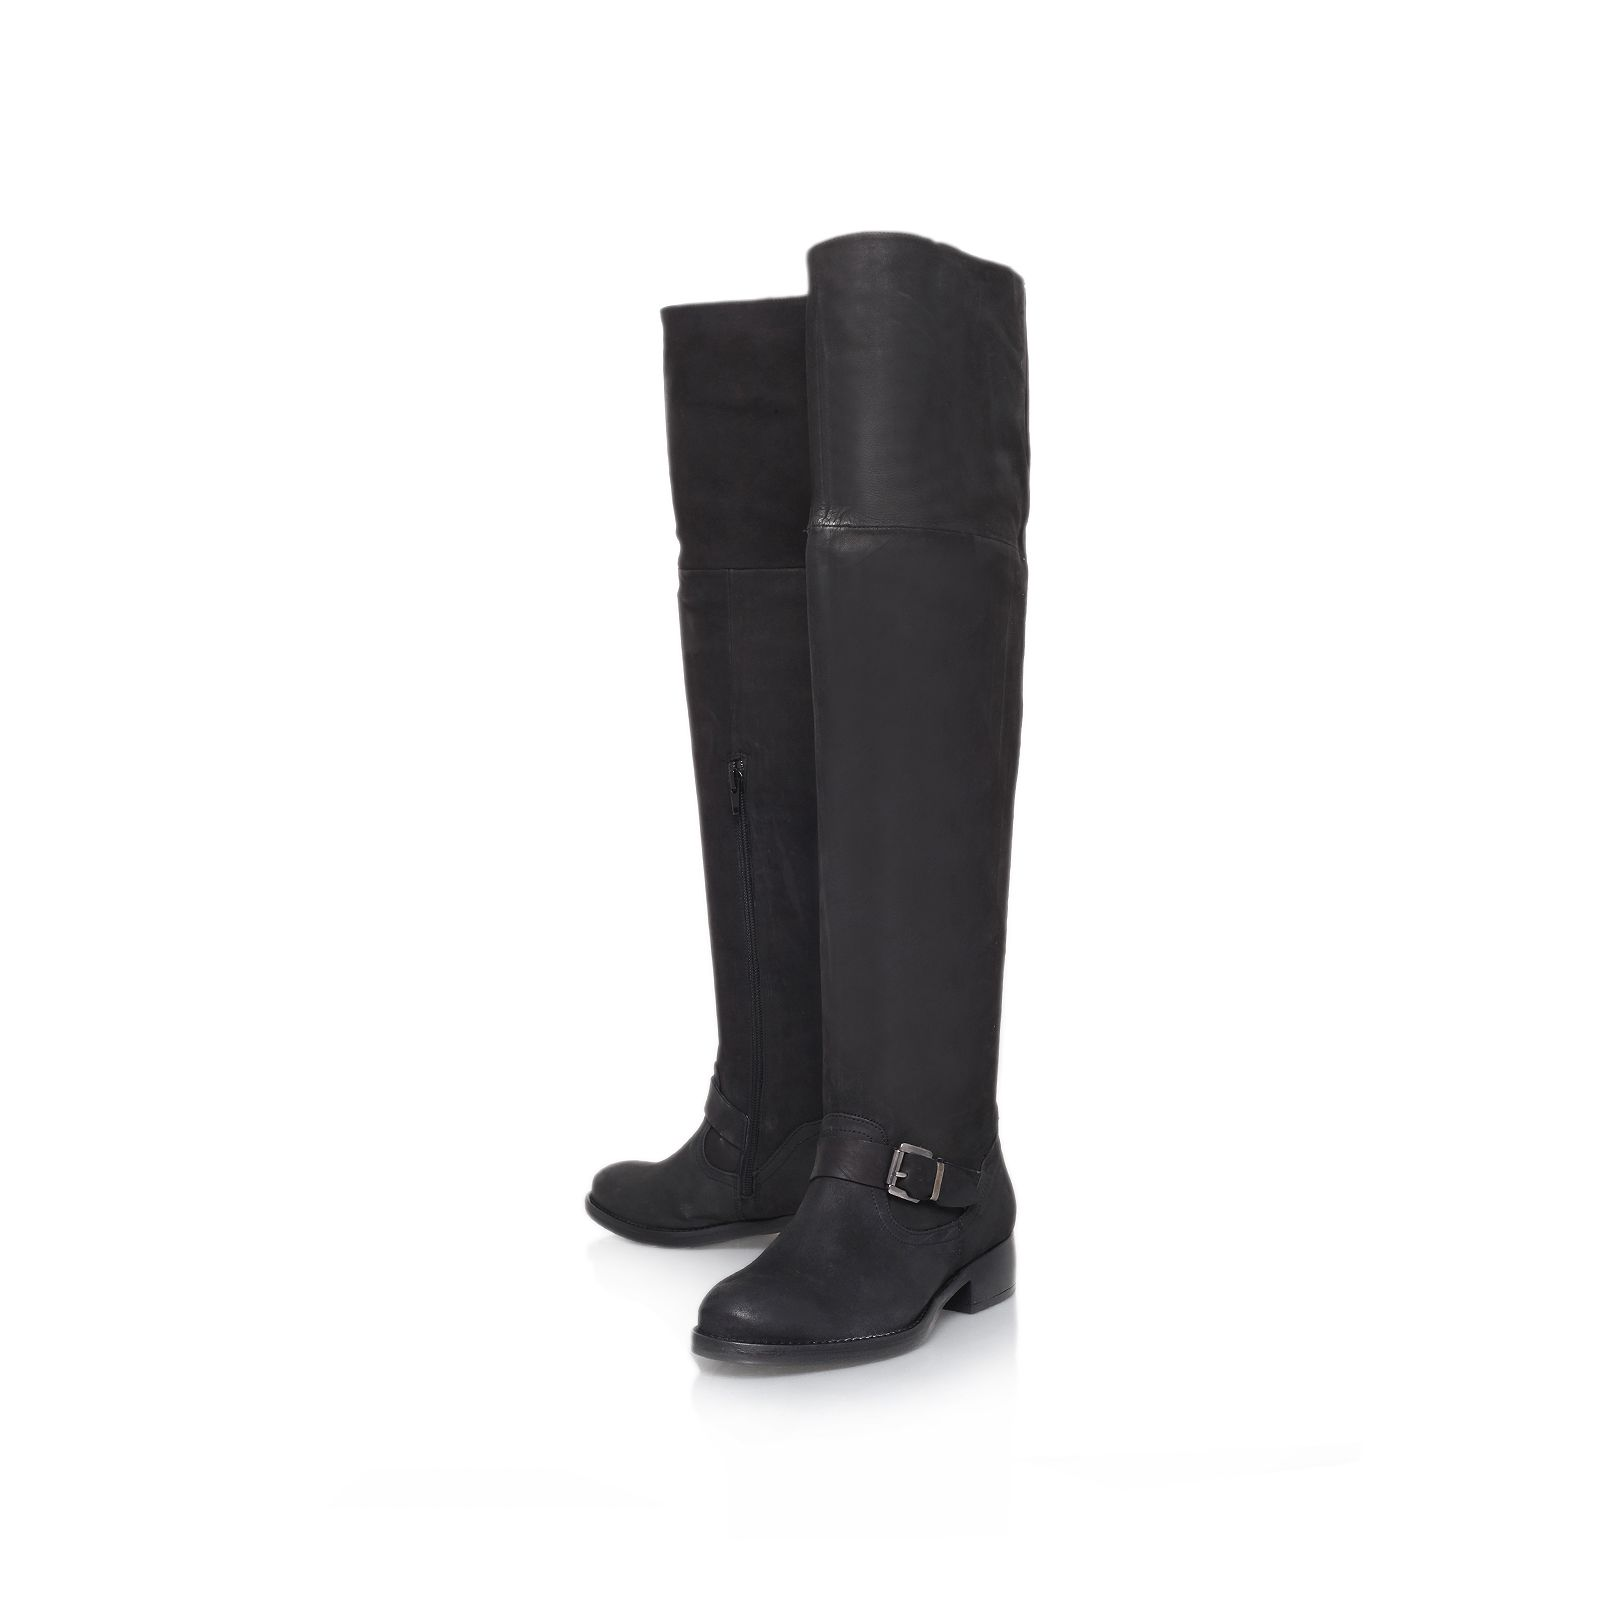 Ash low heel knee boots